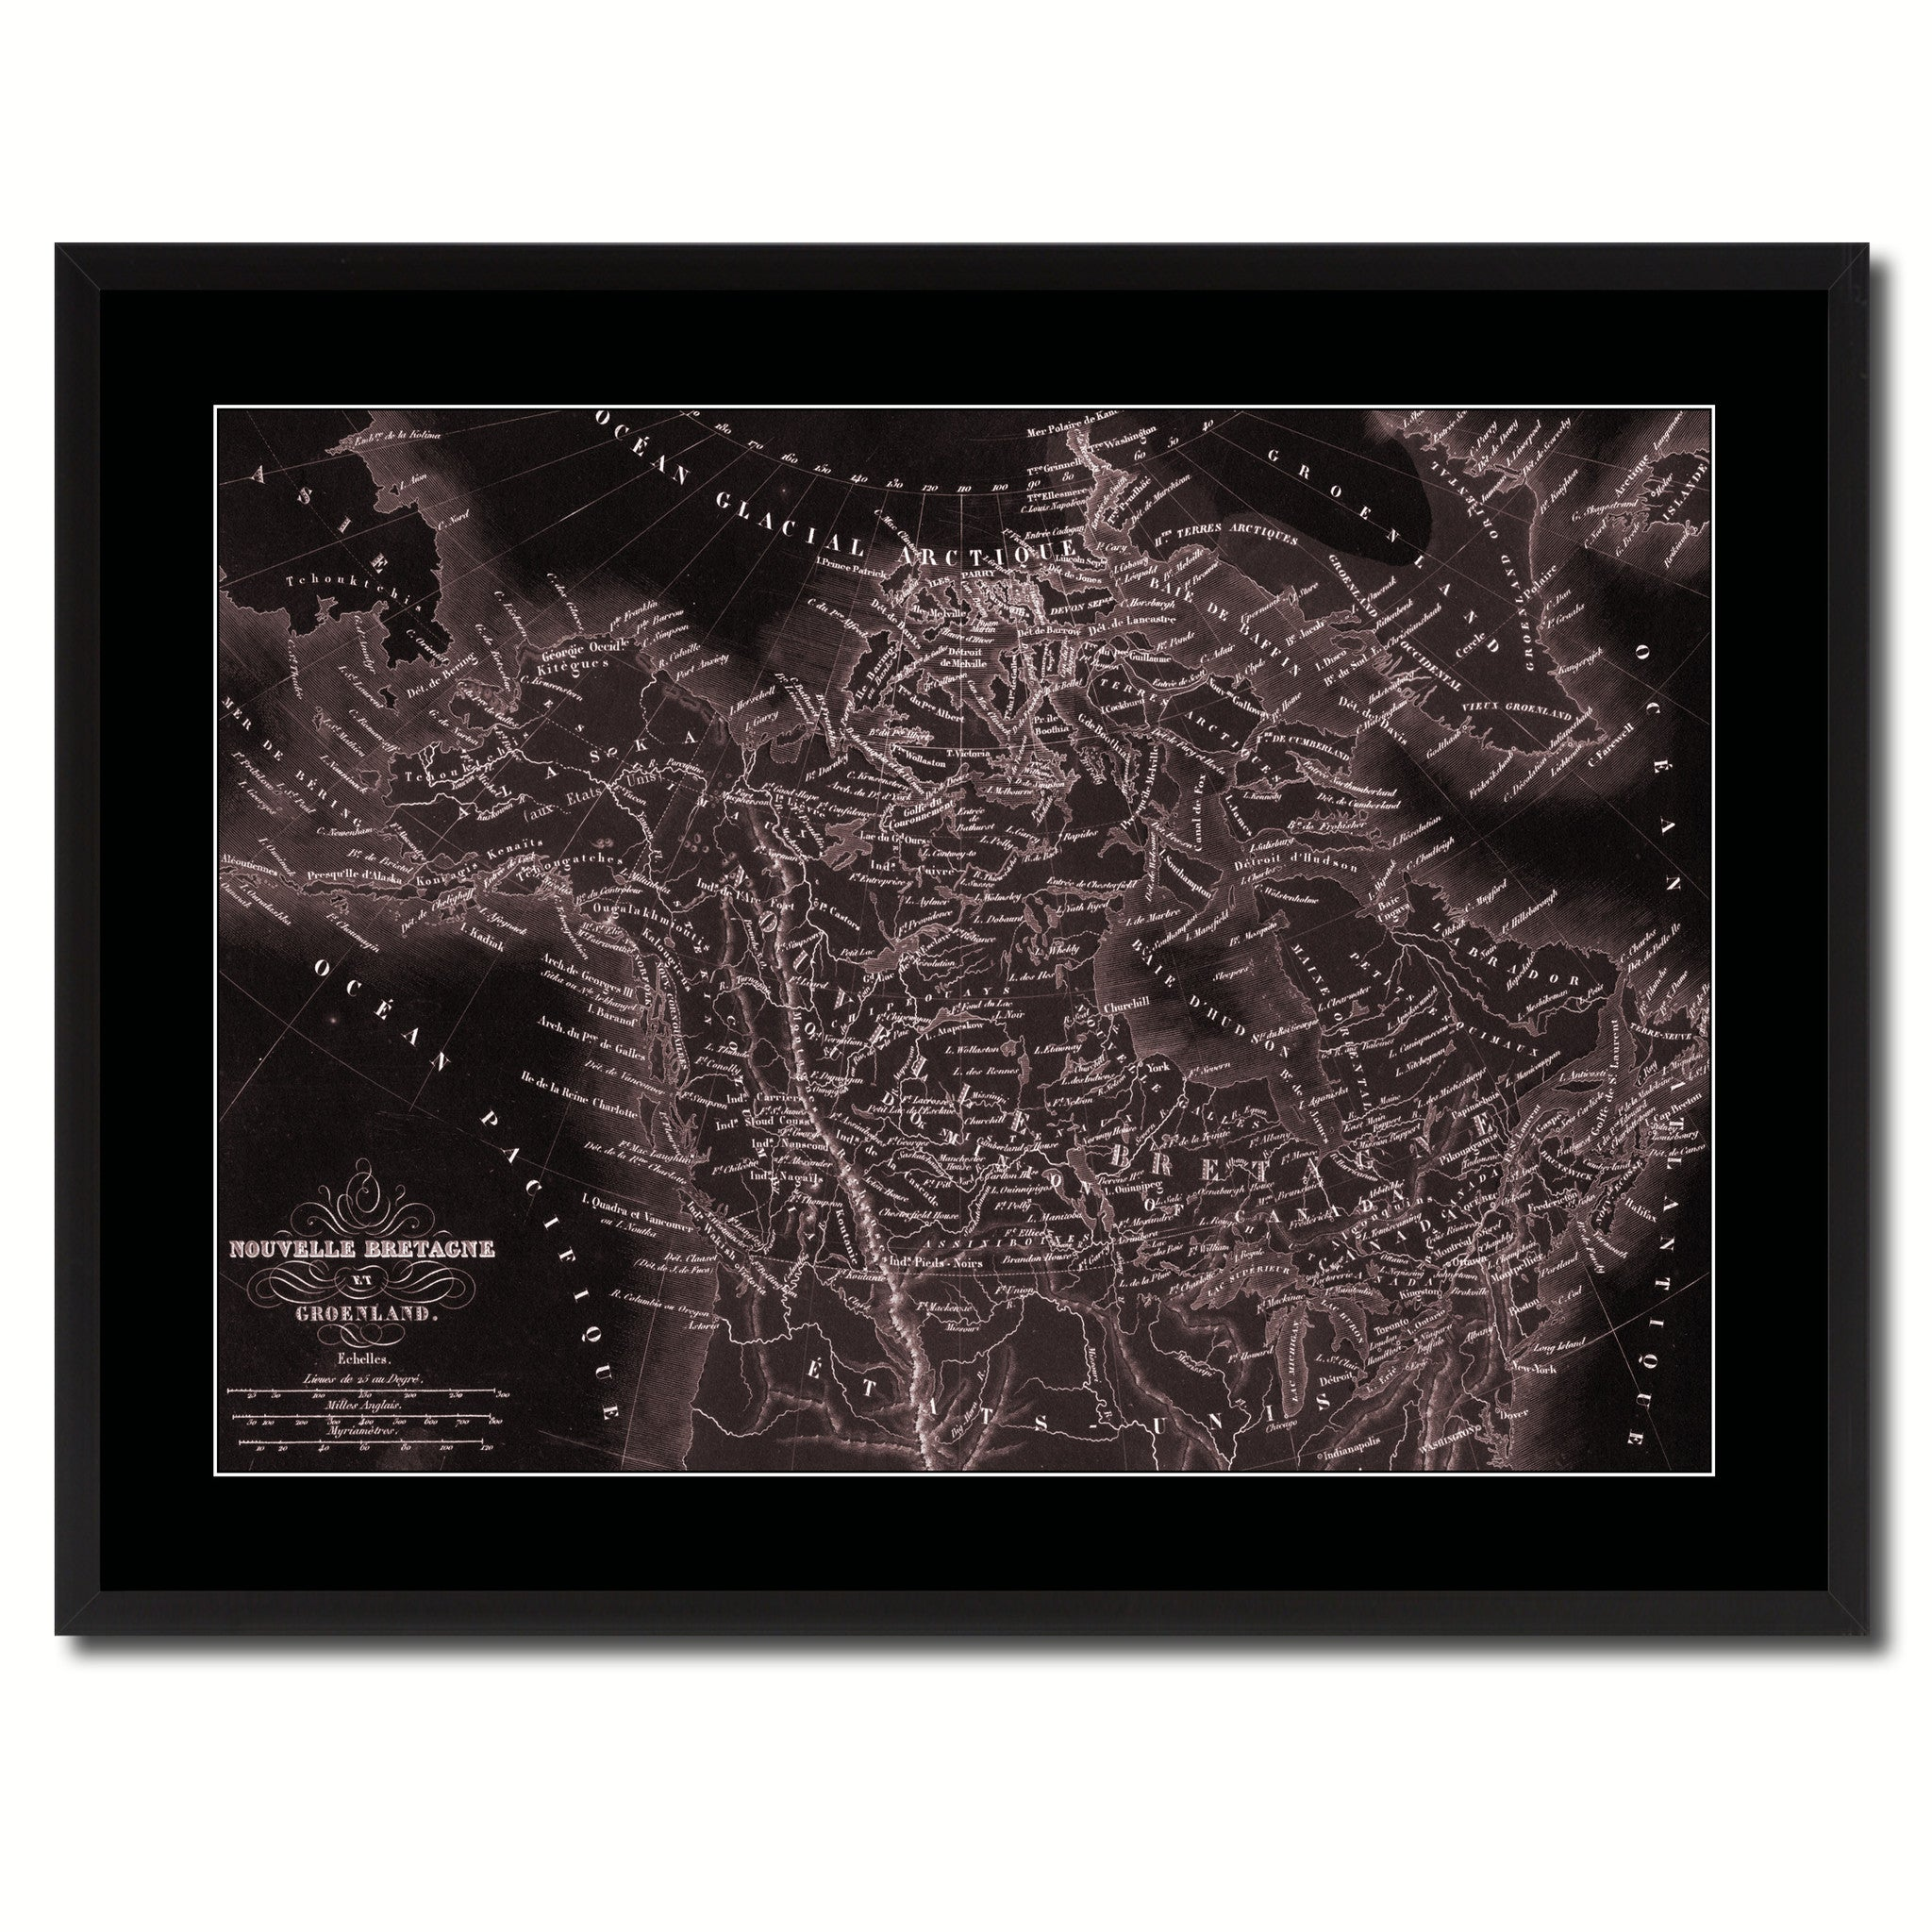 Canada Alaska Vintage Vivid Sepia Map Canvas Print, Picture Frames Home Decor Wall Art Decoration Gifts